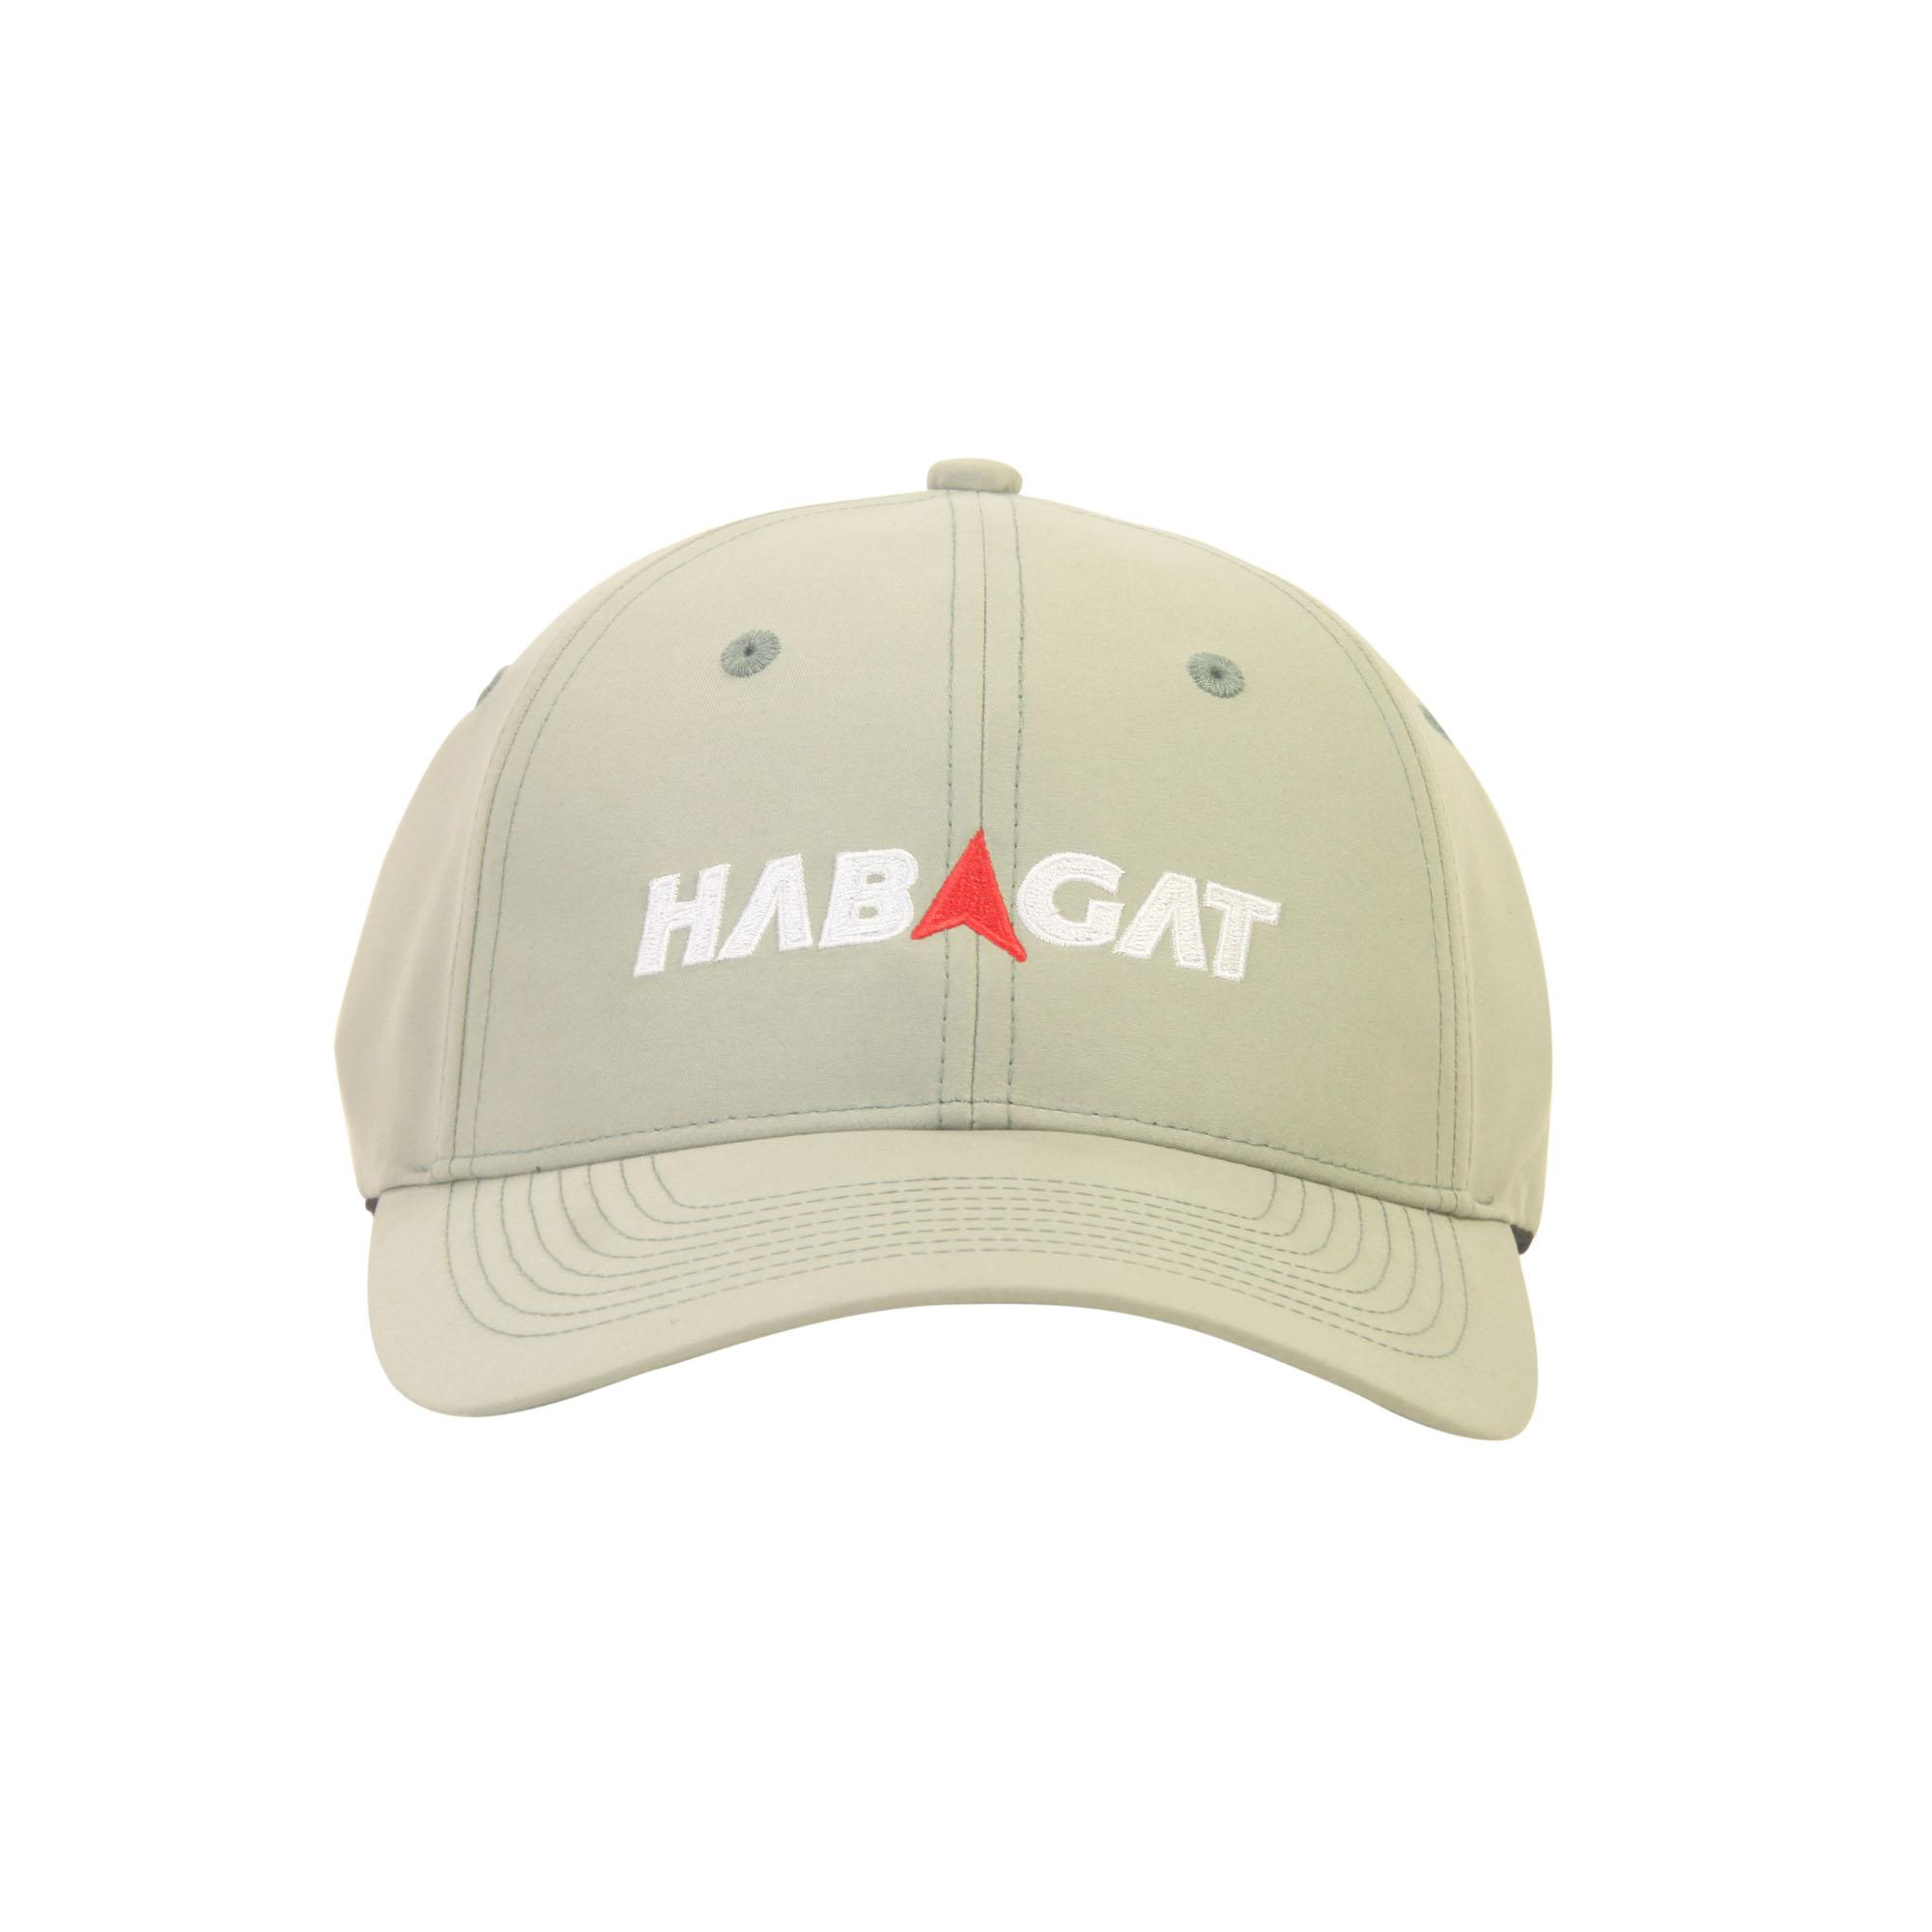 Habagat Classic Cap By Habagat Outdoor Equipment.